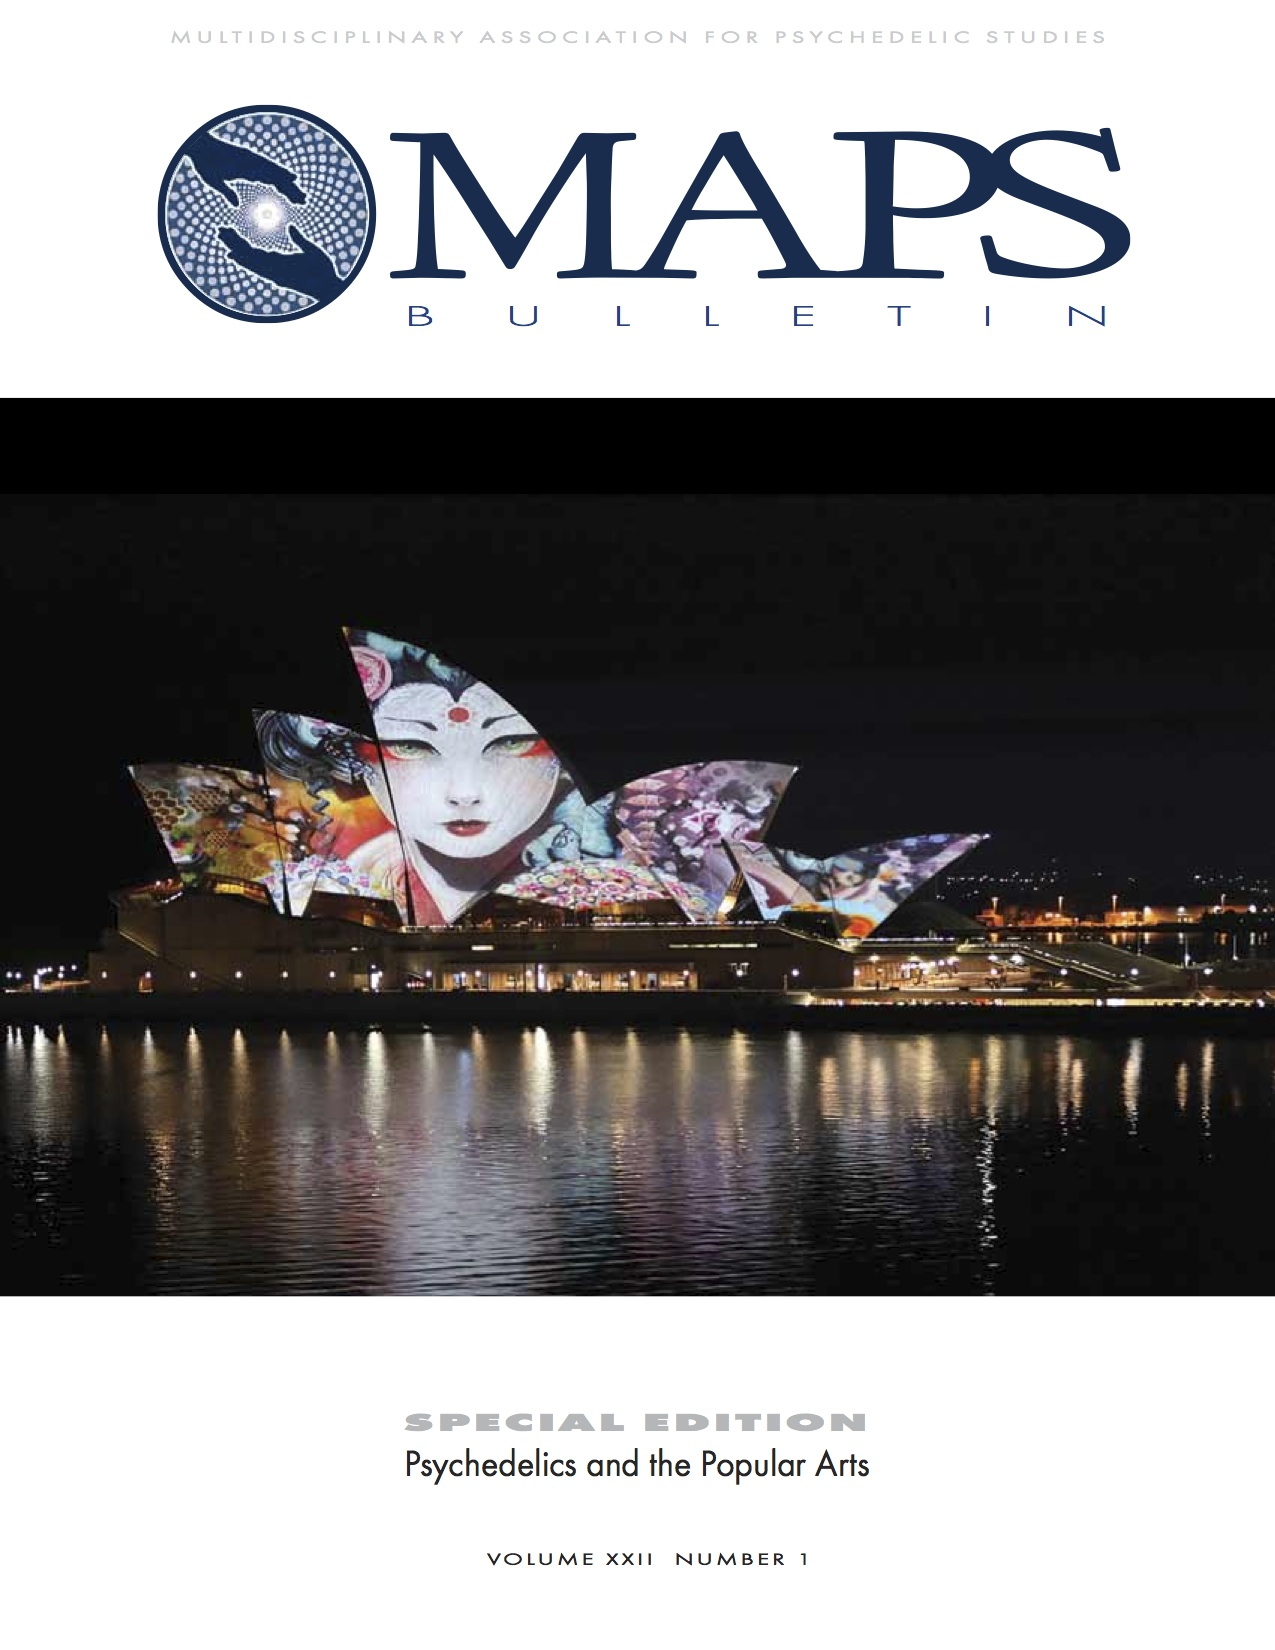 MAPS Bulletin Vol xxii No 1: Spring 2012 - Front Cover Image - Psychedelic Art -